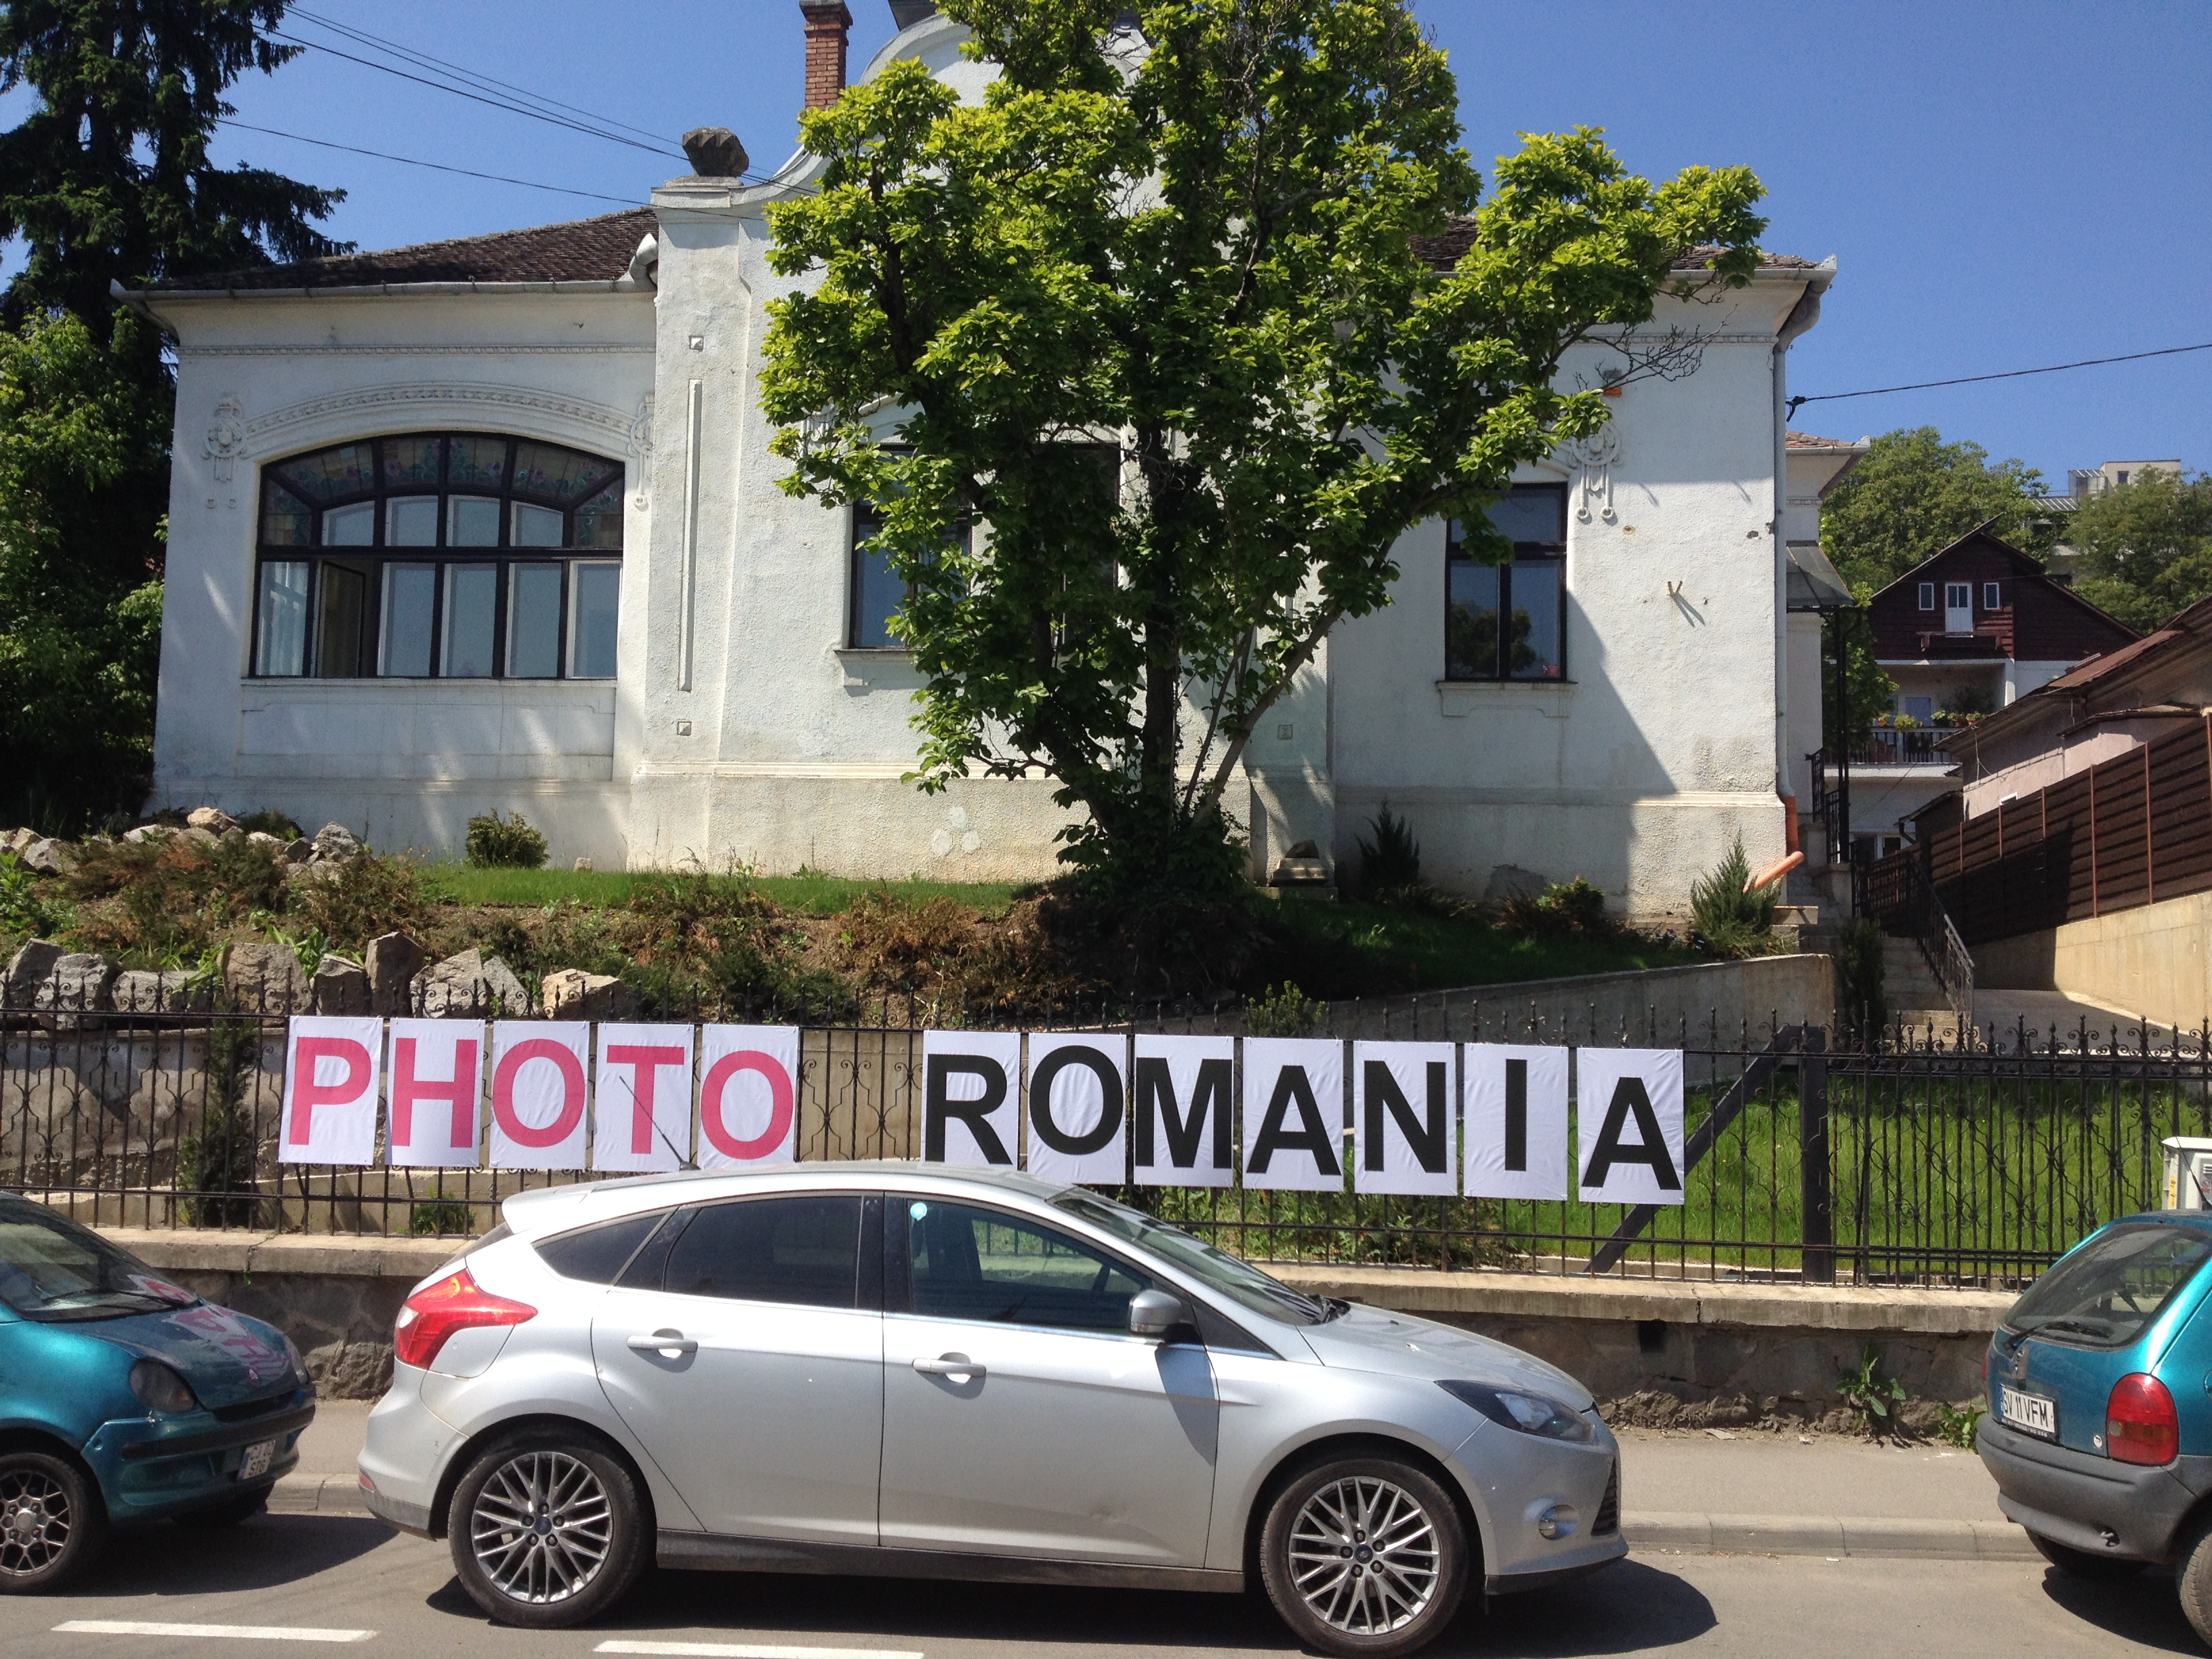 REVIEW: Photo Romania Festival 2016